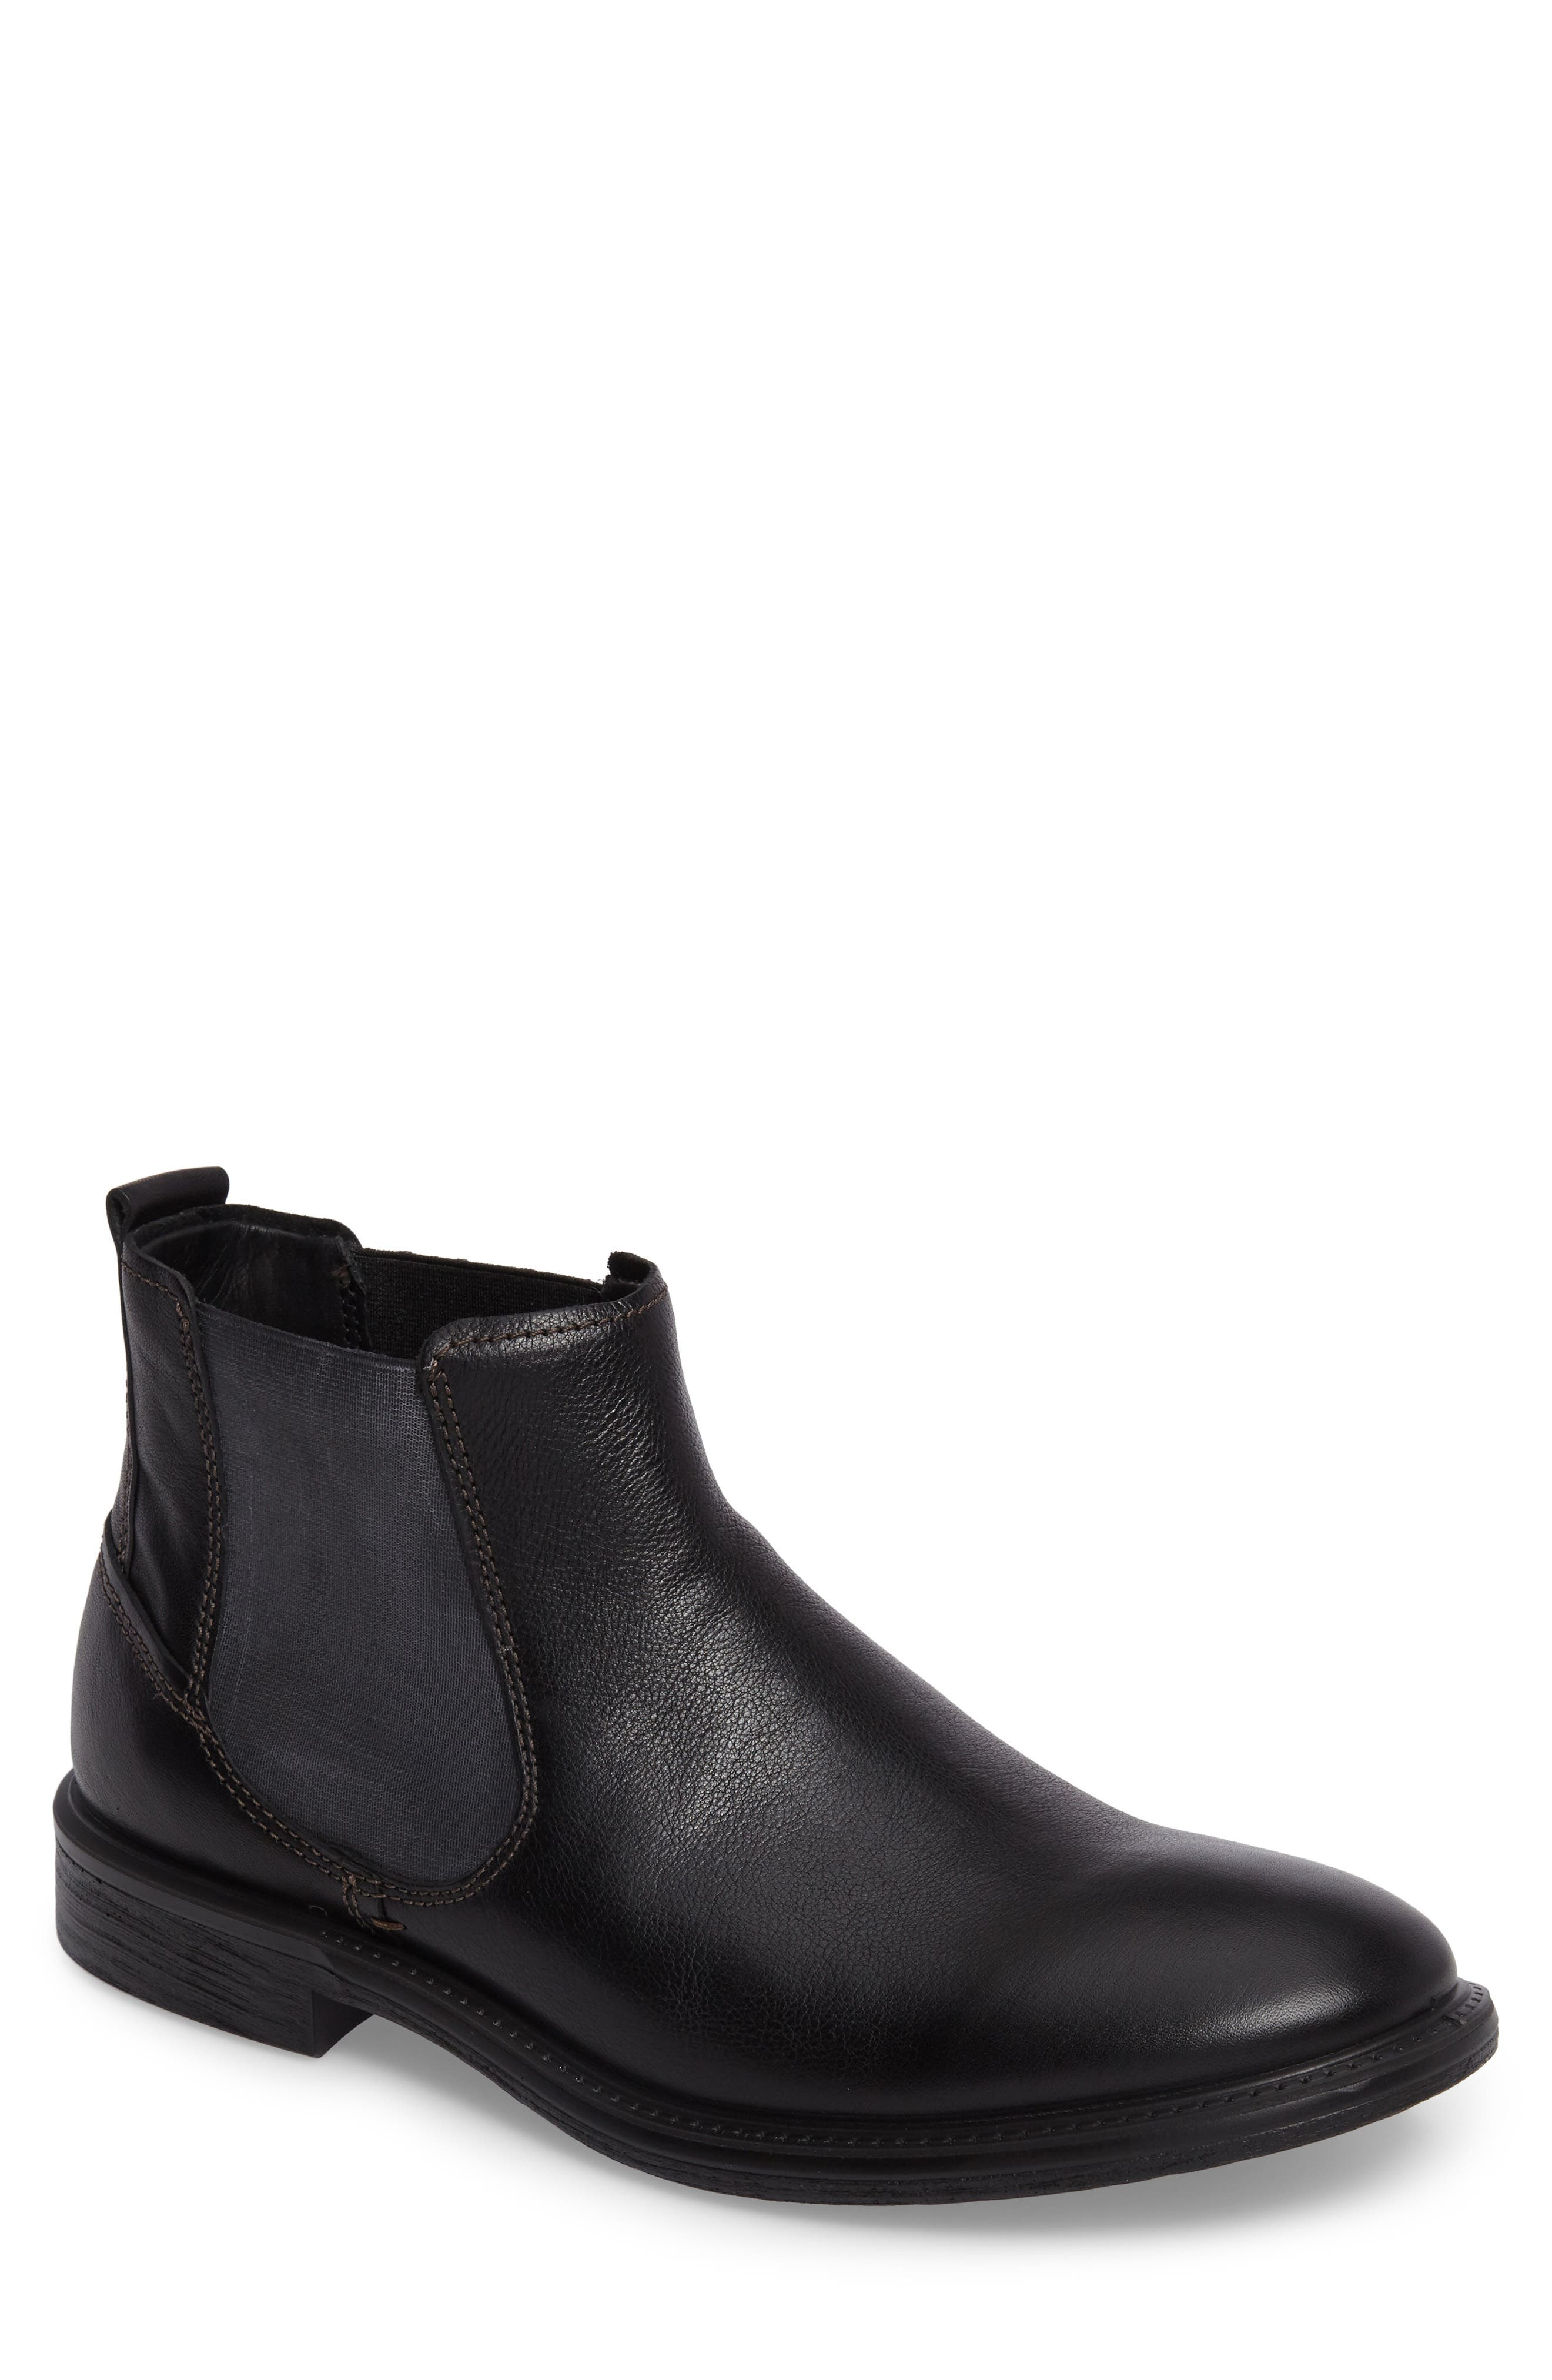 Alternate Image 1 Selected - ECCO Knoxville Chelsea Boot (Men)